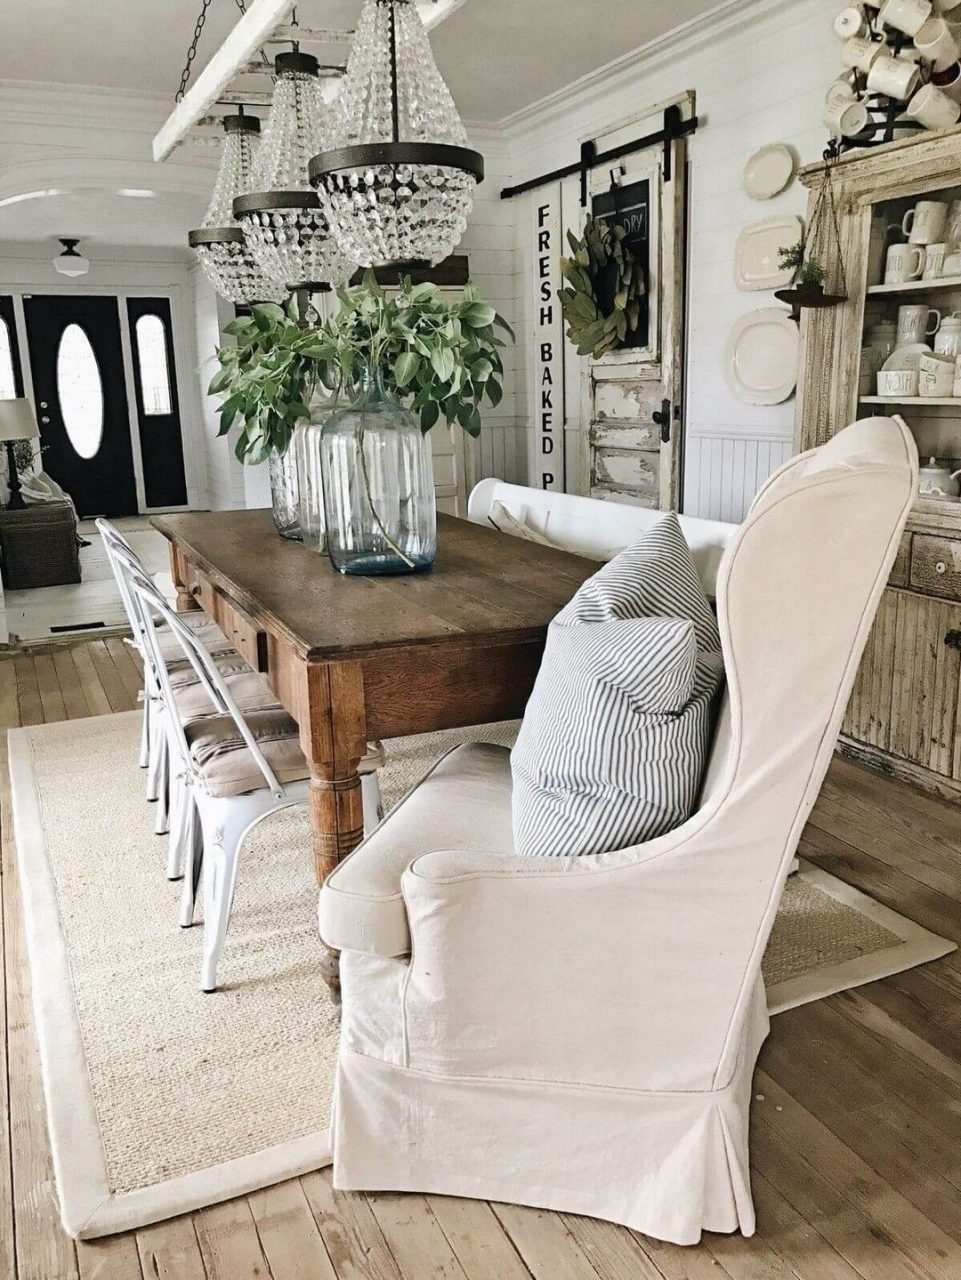 Farmhouse Decorating Style For Living Room And Kitchen Farmhouse